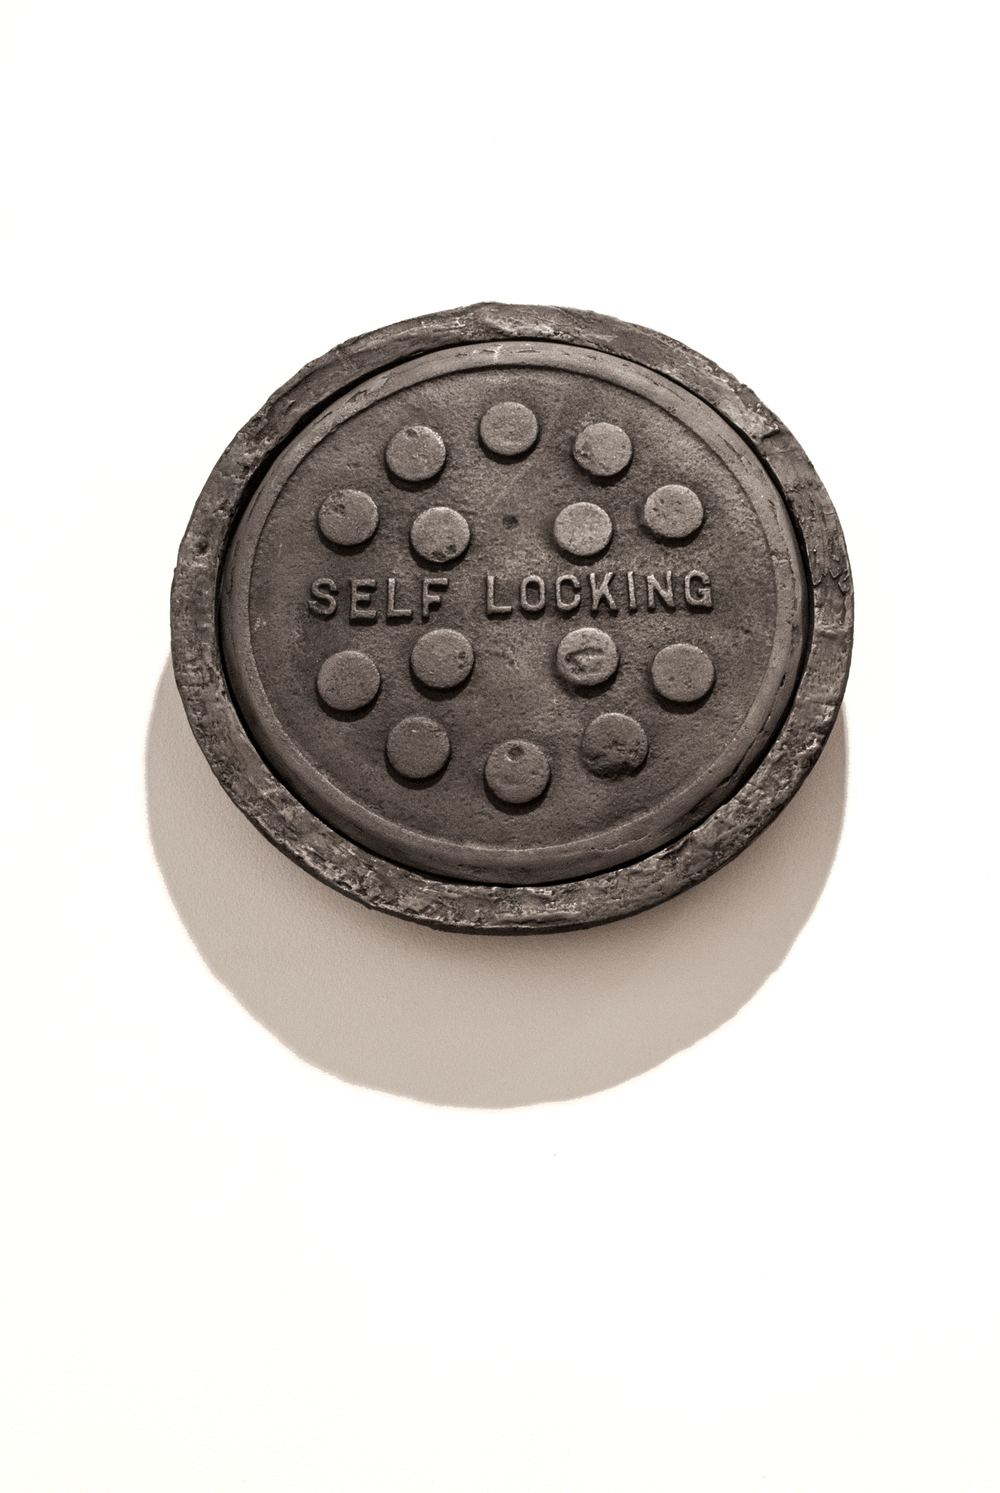 Commemorate WC1, 2013 Coal hole covers cast in compressed charcoal dust